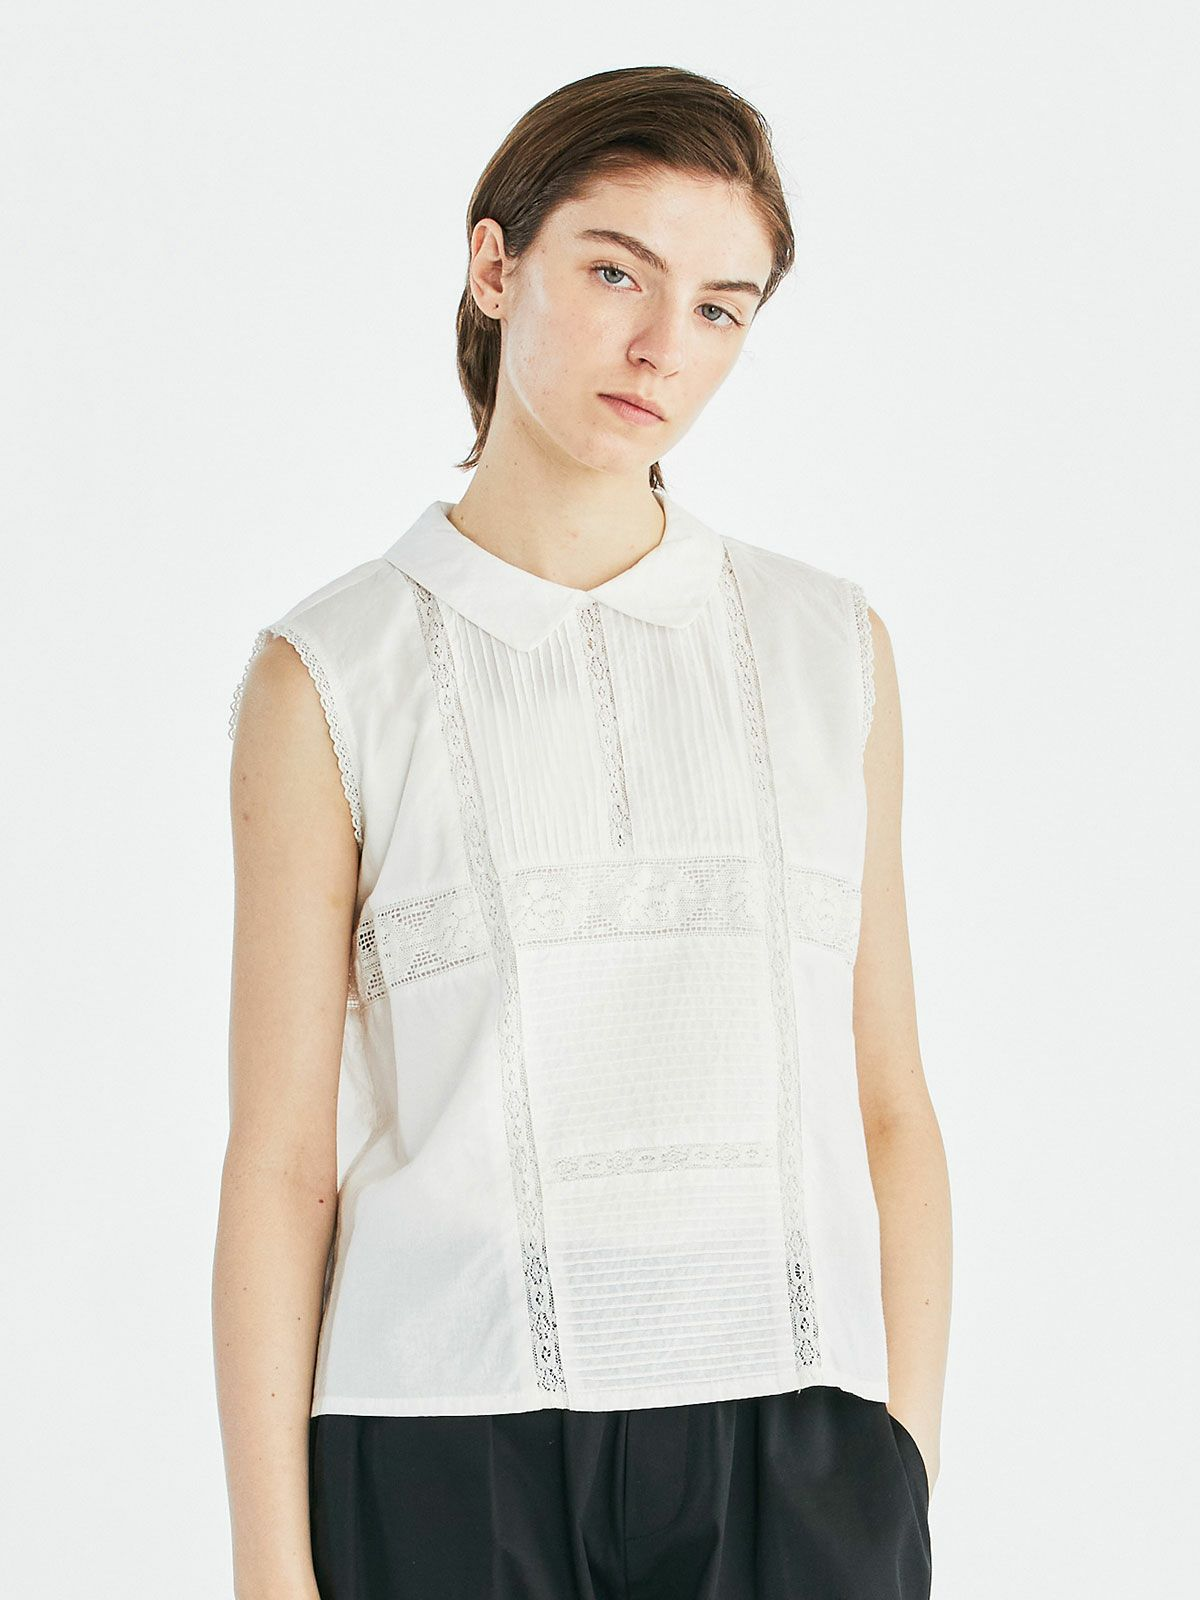 pintuck & lace n/s shirt with collar